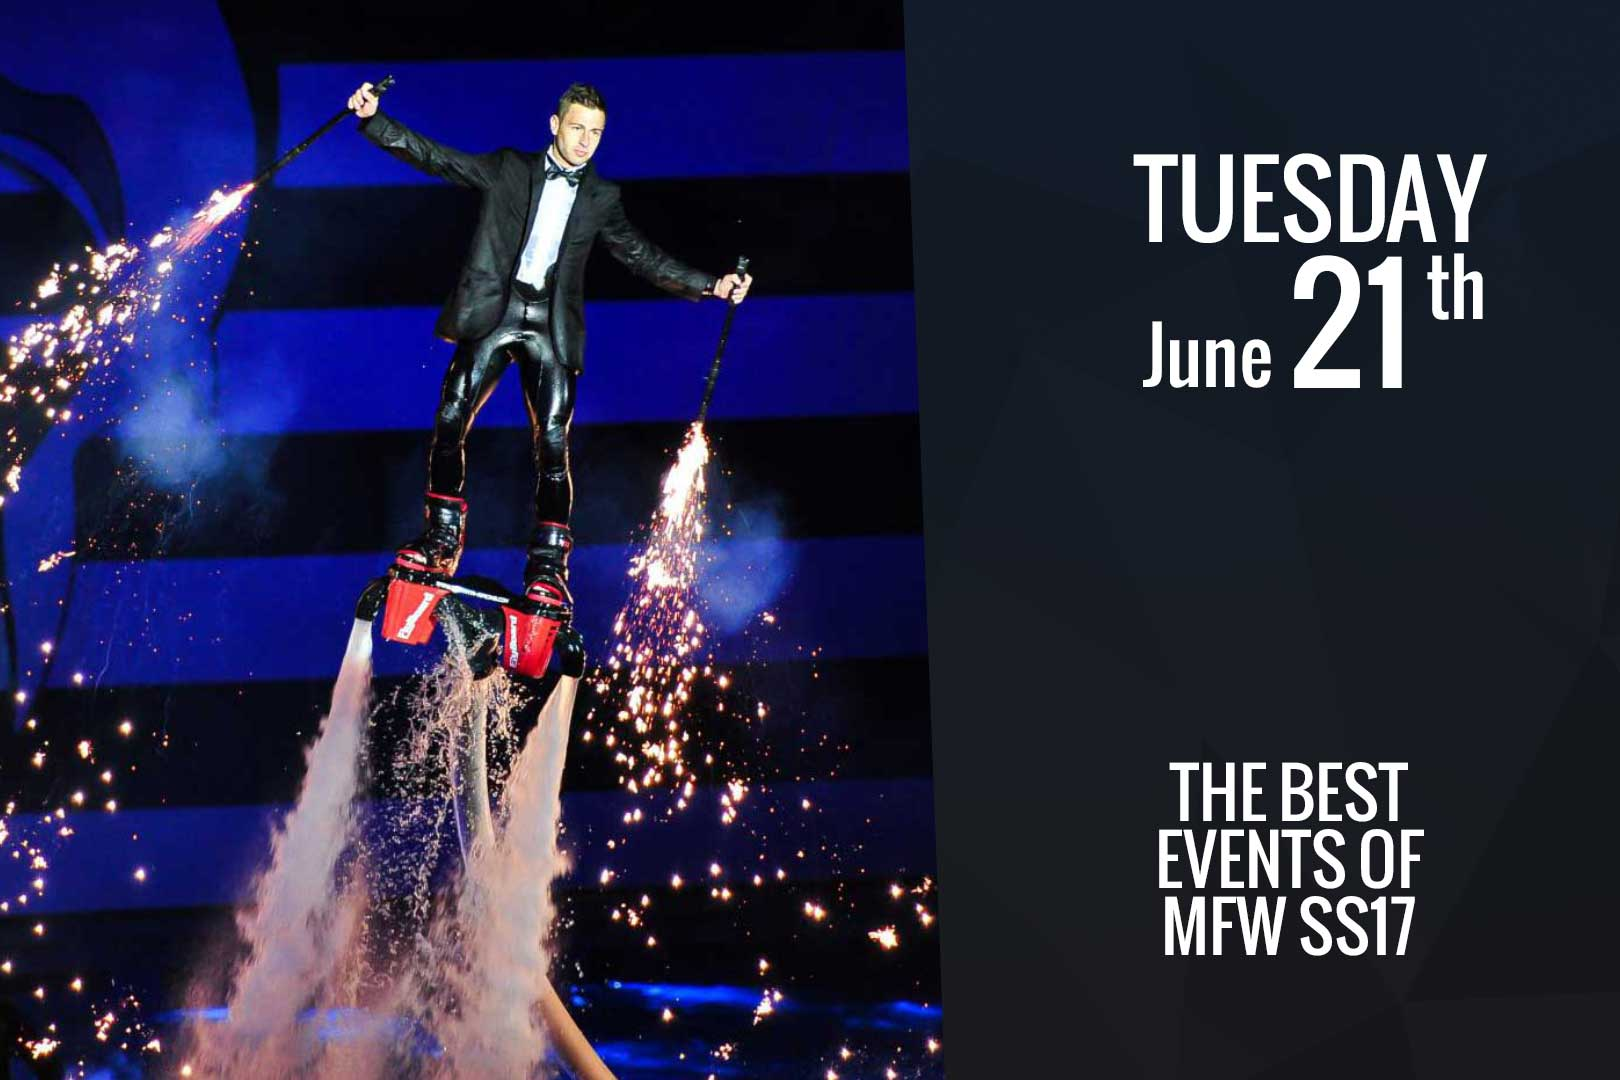 Tuesday June 21st: the best events